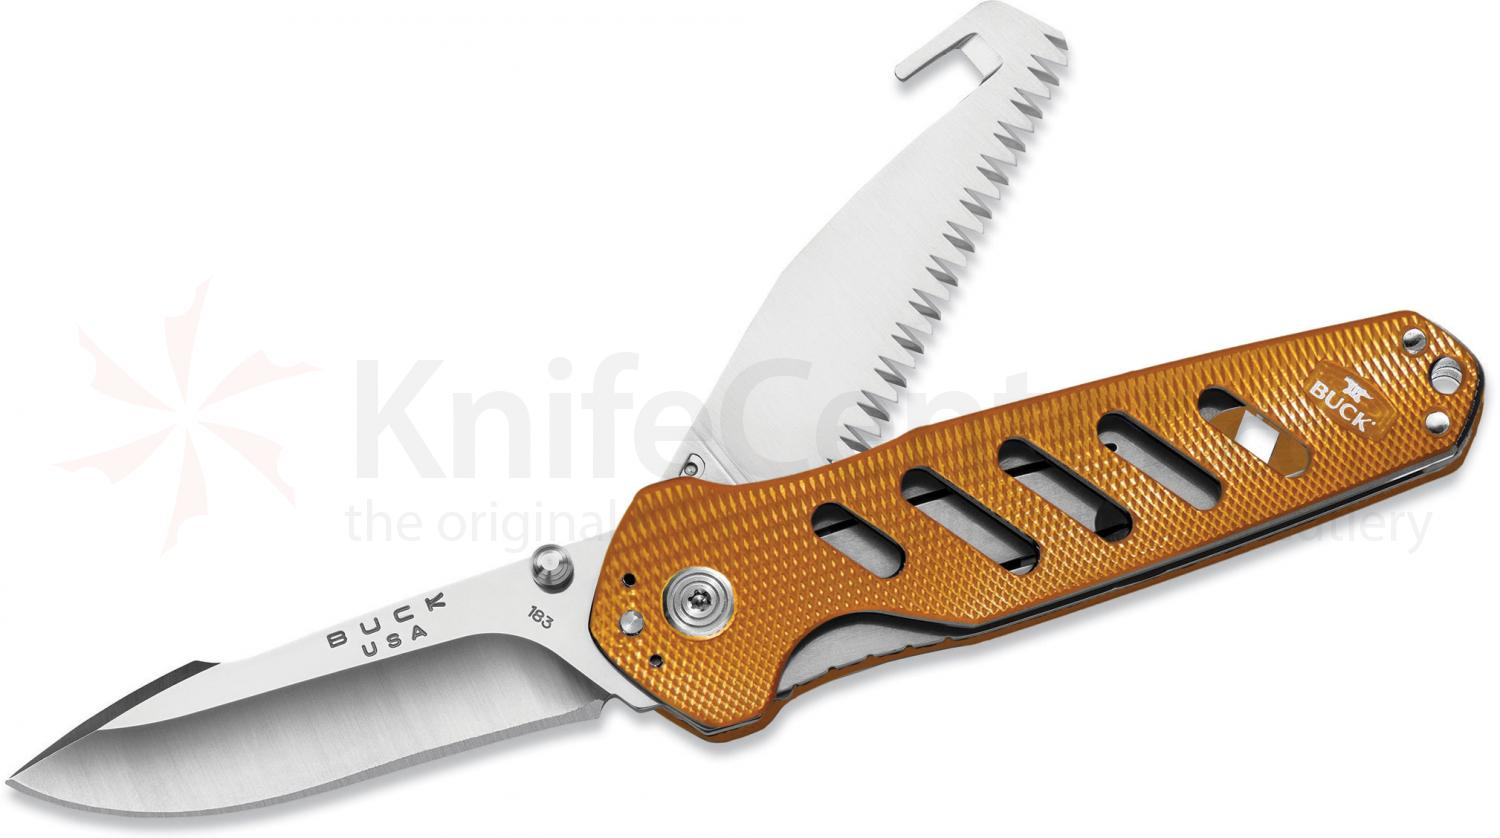 Buck 183 Alpha CrossLock Multi-Function Folding Knife 4.625 inch Closed, Gut Hook, Orange Aluminum Handles